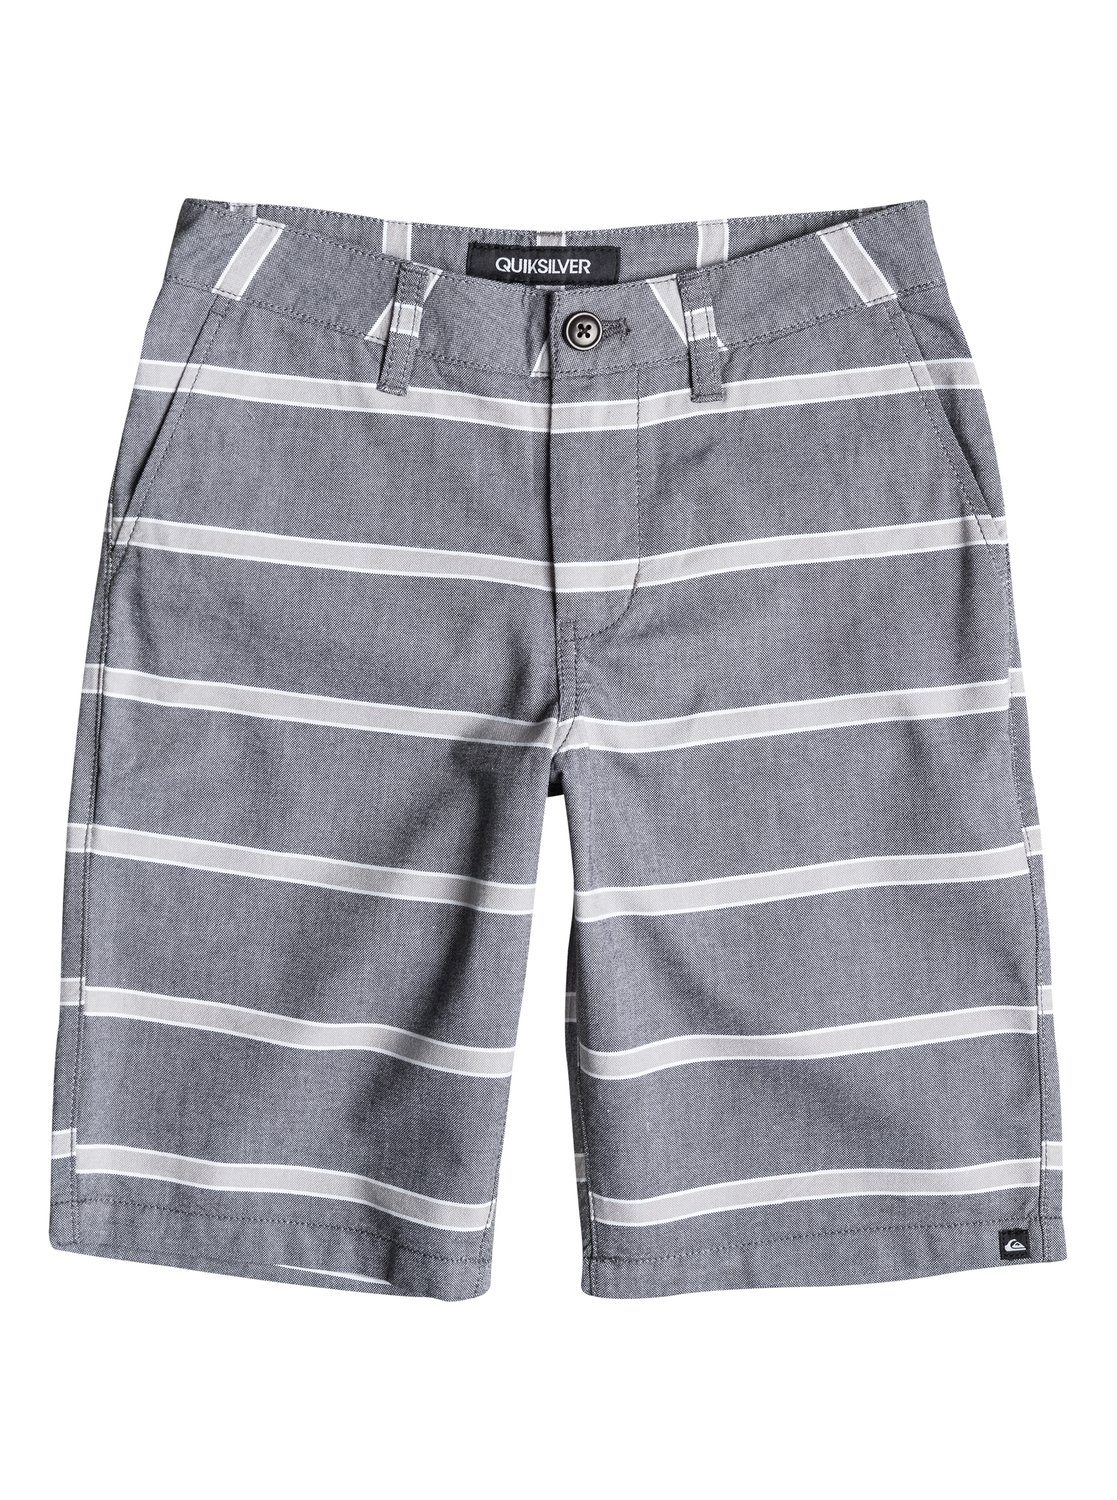 Free shipping BOTH ways on nike elite stripe short boys, from our vast selection of styles. Fast delivery, and 24/7/ real-person service with a smile. Click or call